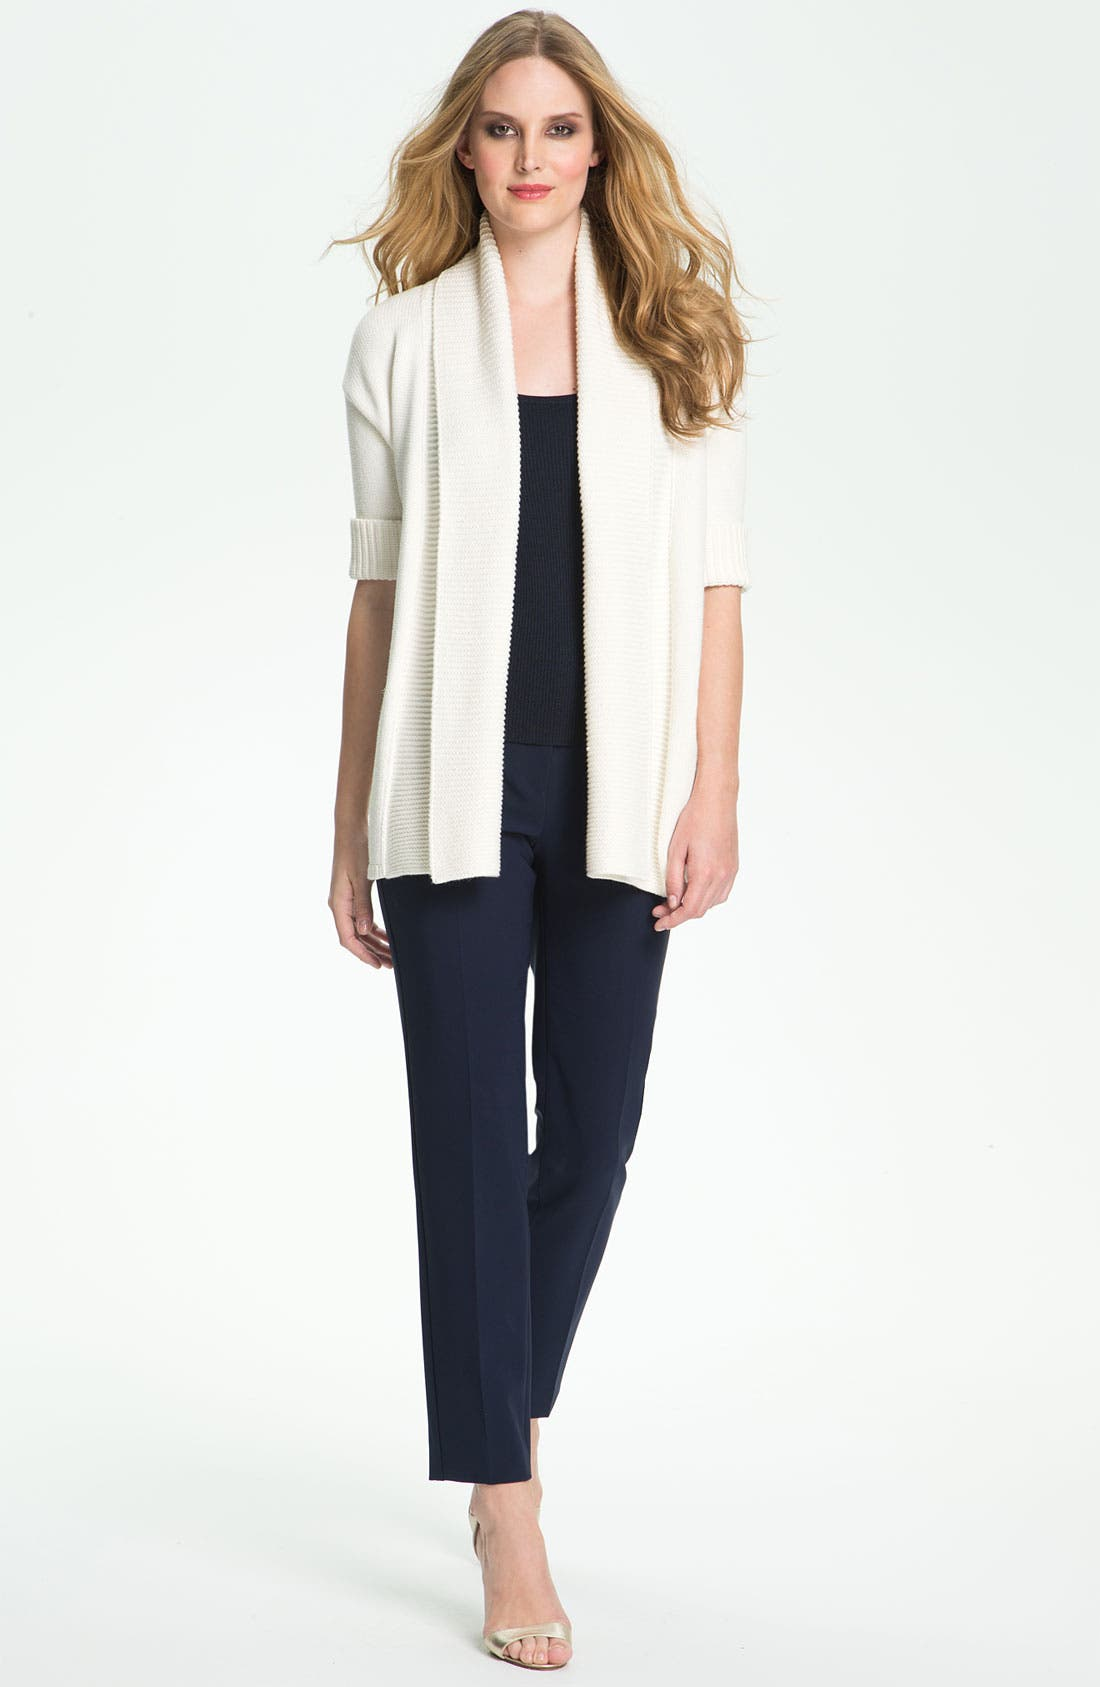 Main Image - St. John Yellow Label Elbow Sleeve Cardigan